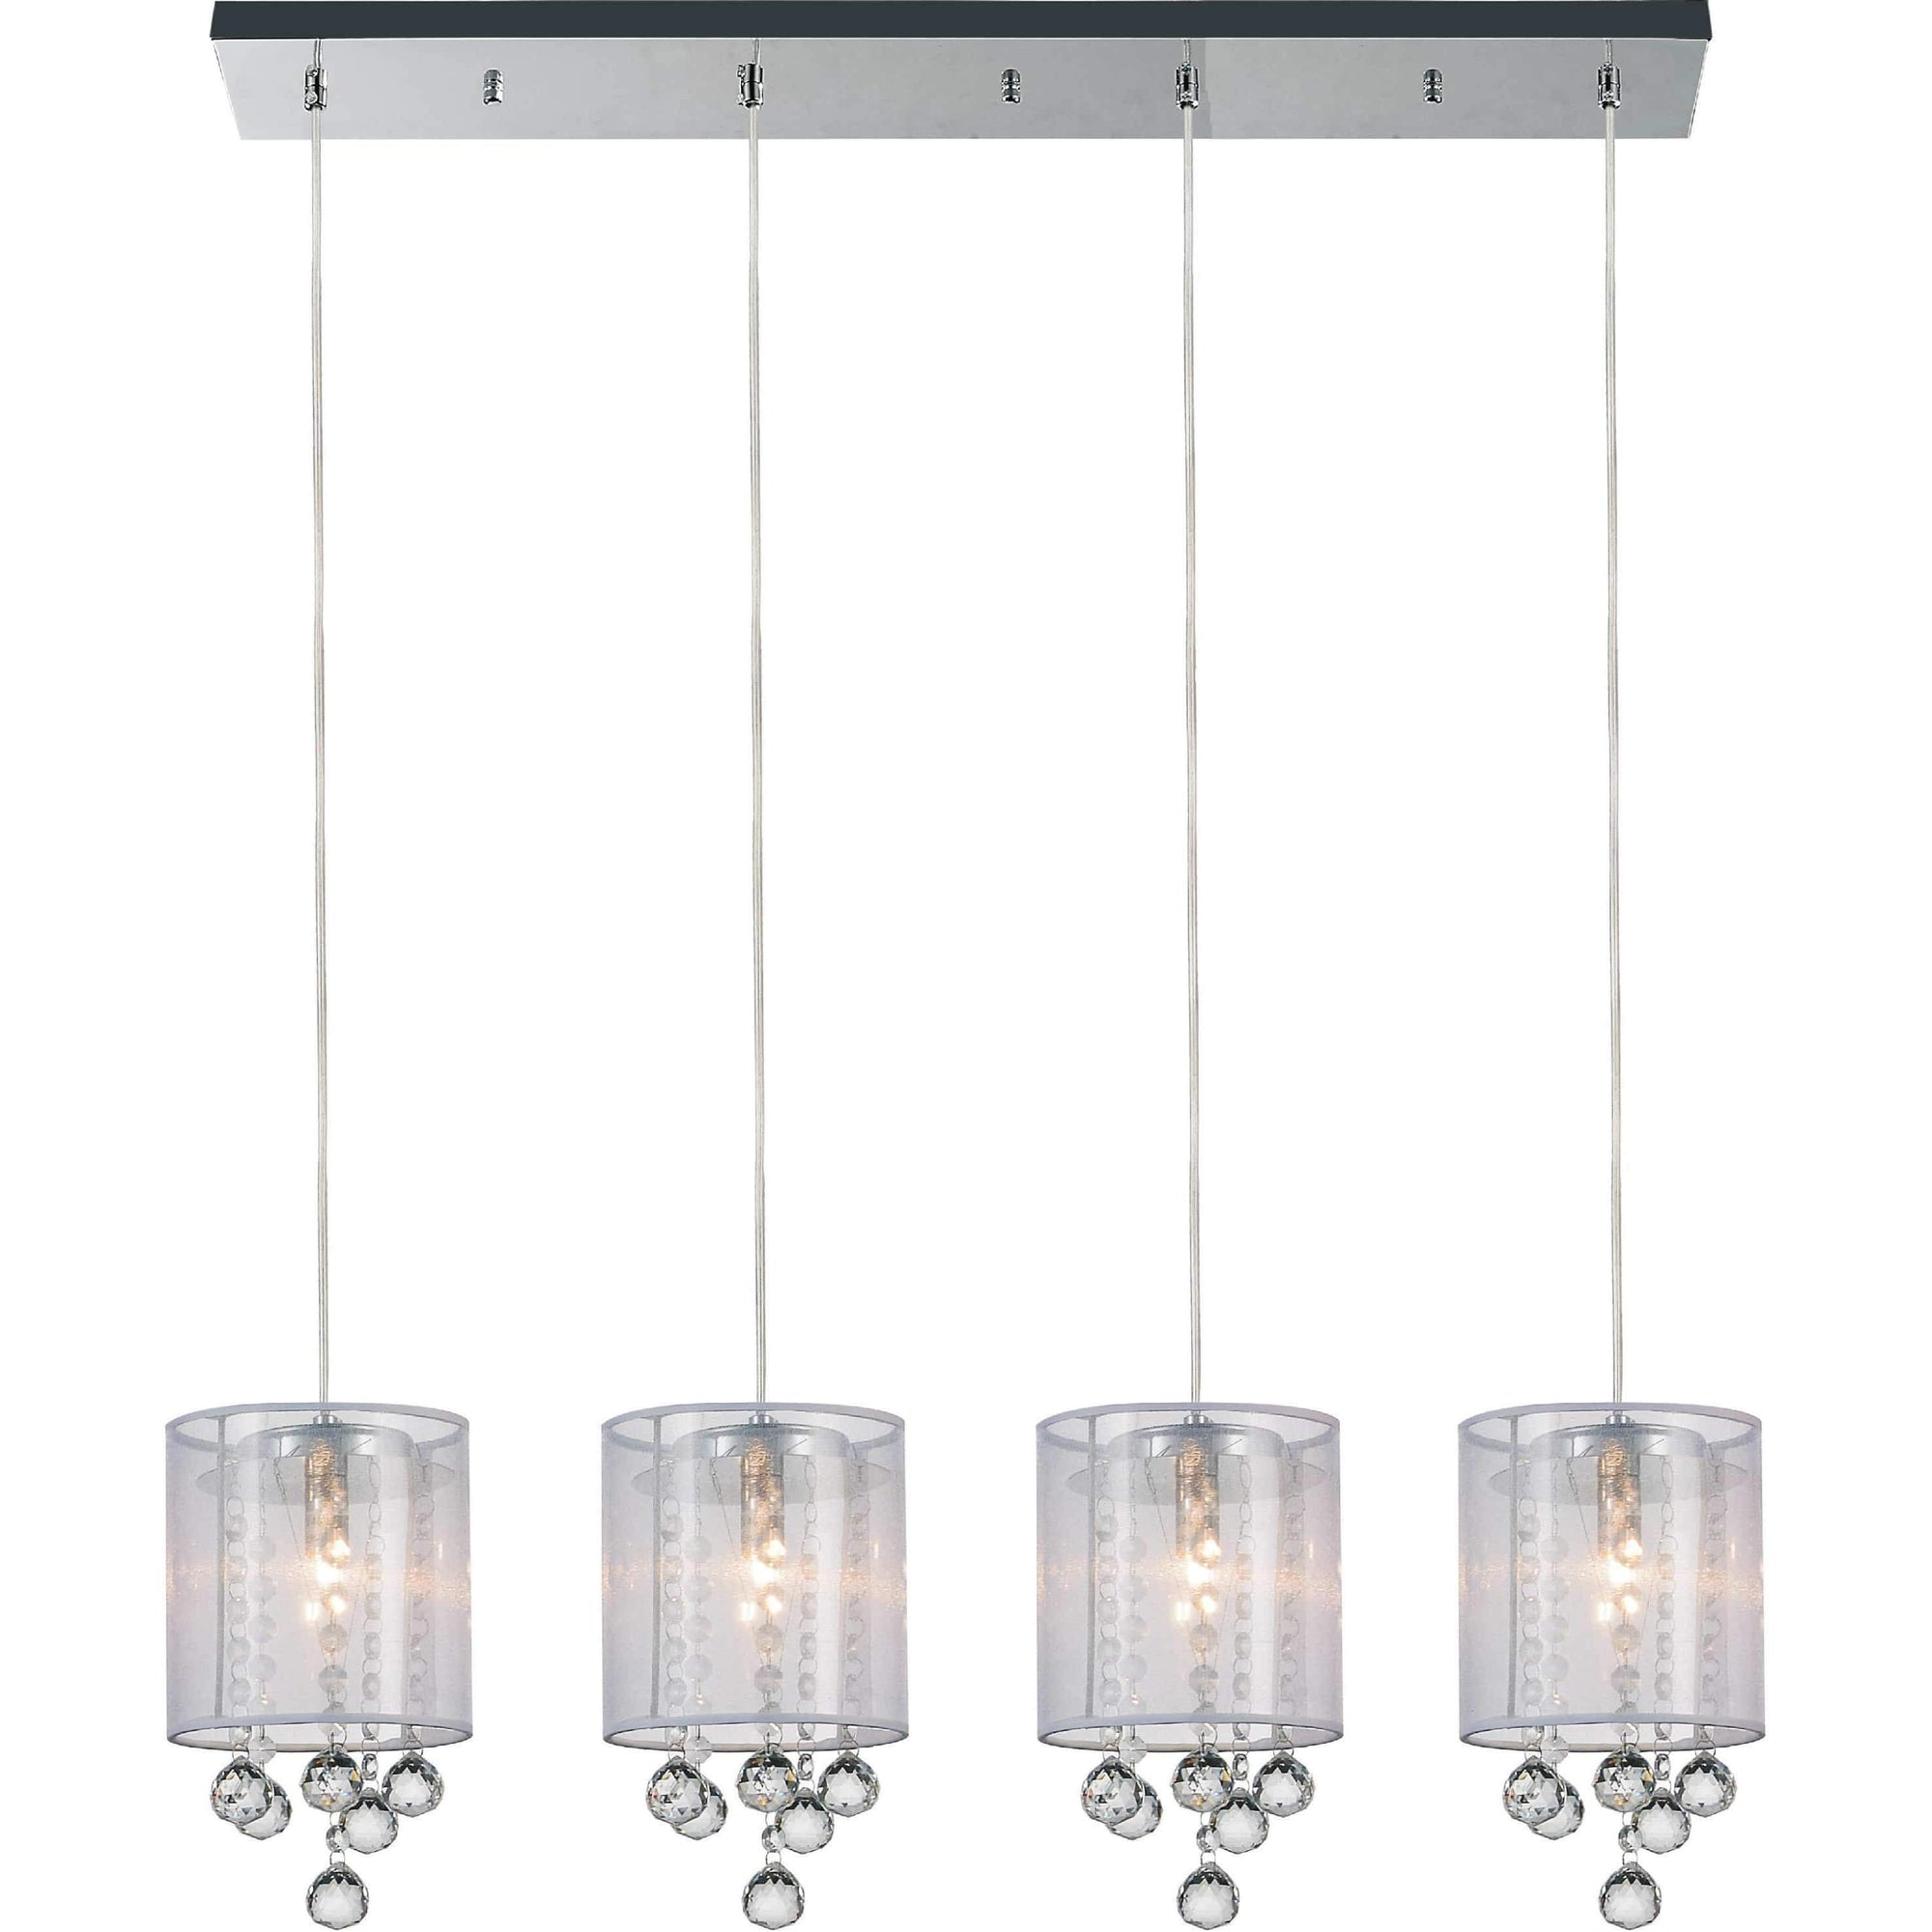 CWI Lighting Pendants Chrome / K9 Clear Radiant 4 Light Multi Light Pendant with Chrome finish by CWI Lighting 5062P33C-4 (Clear + W)